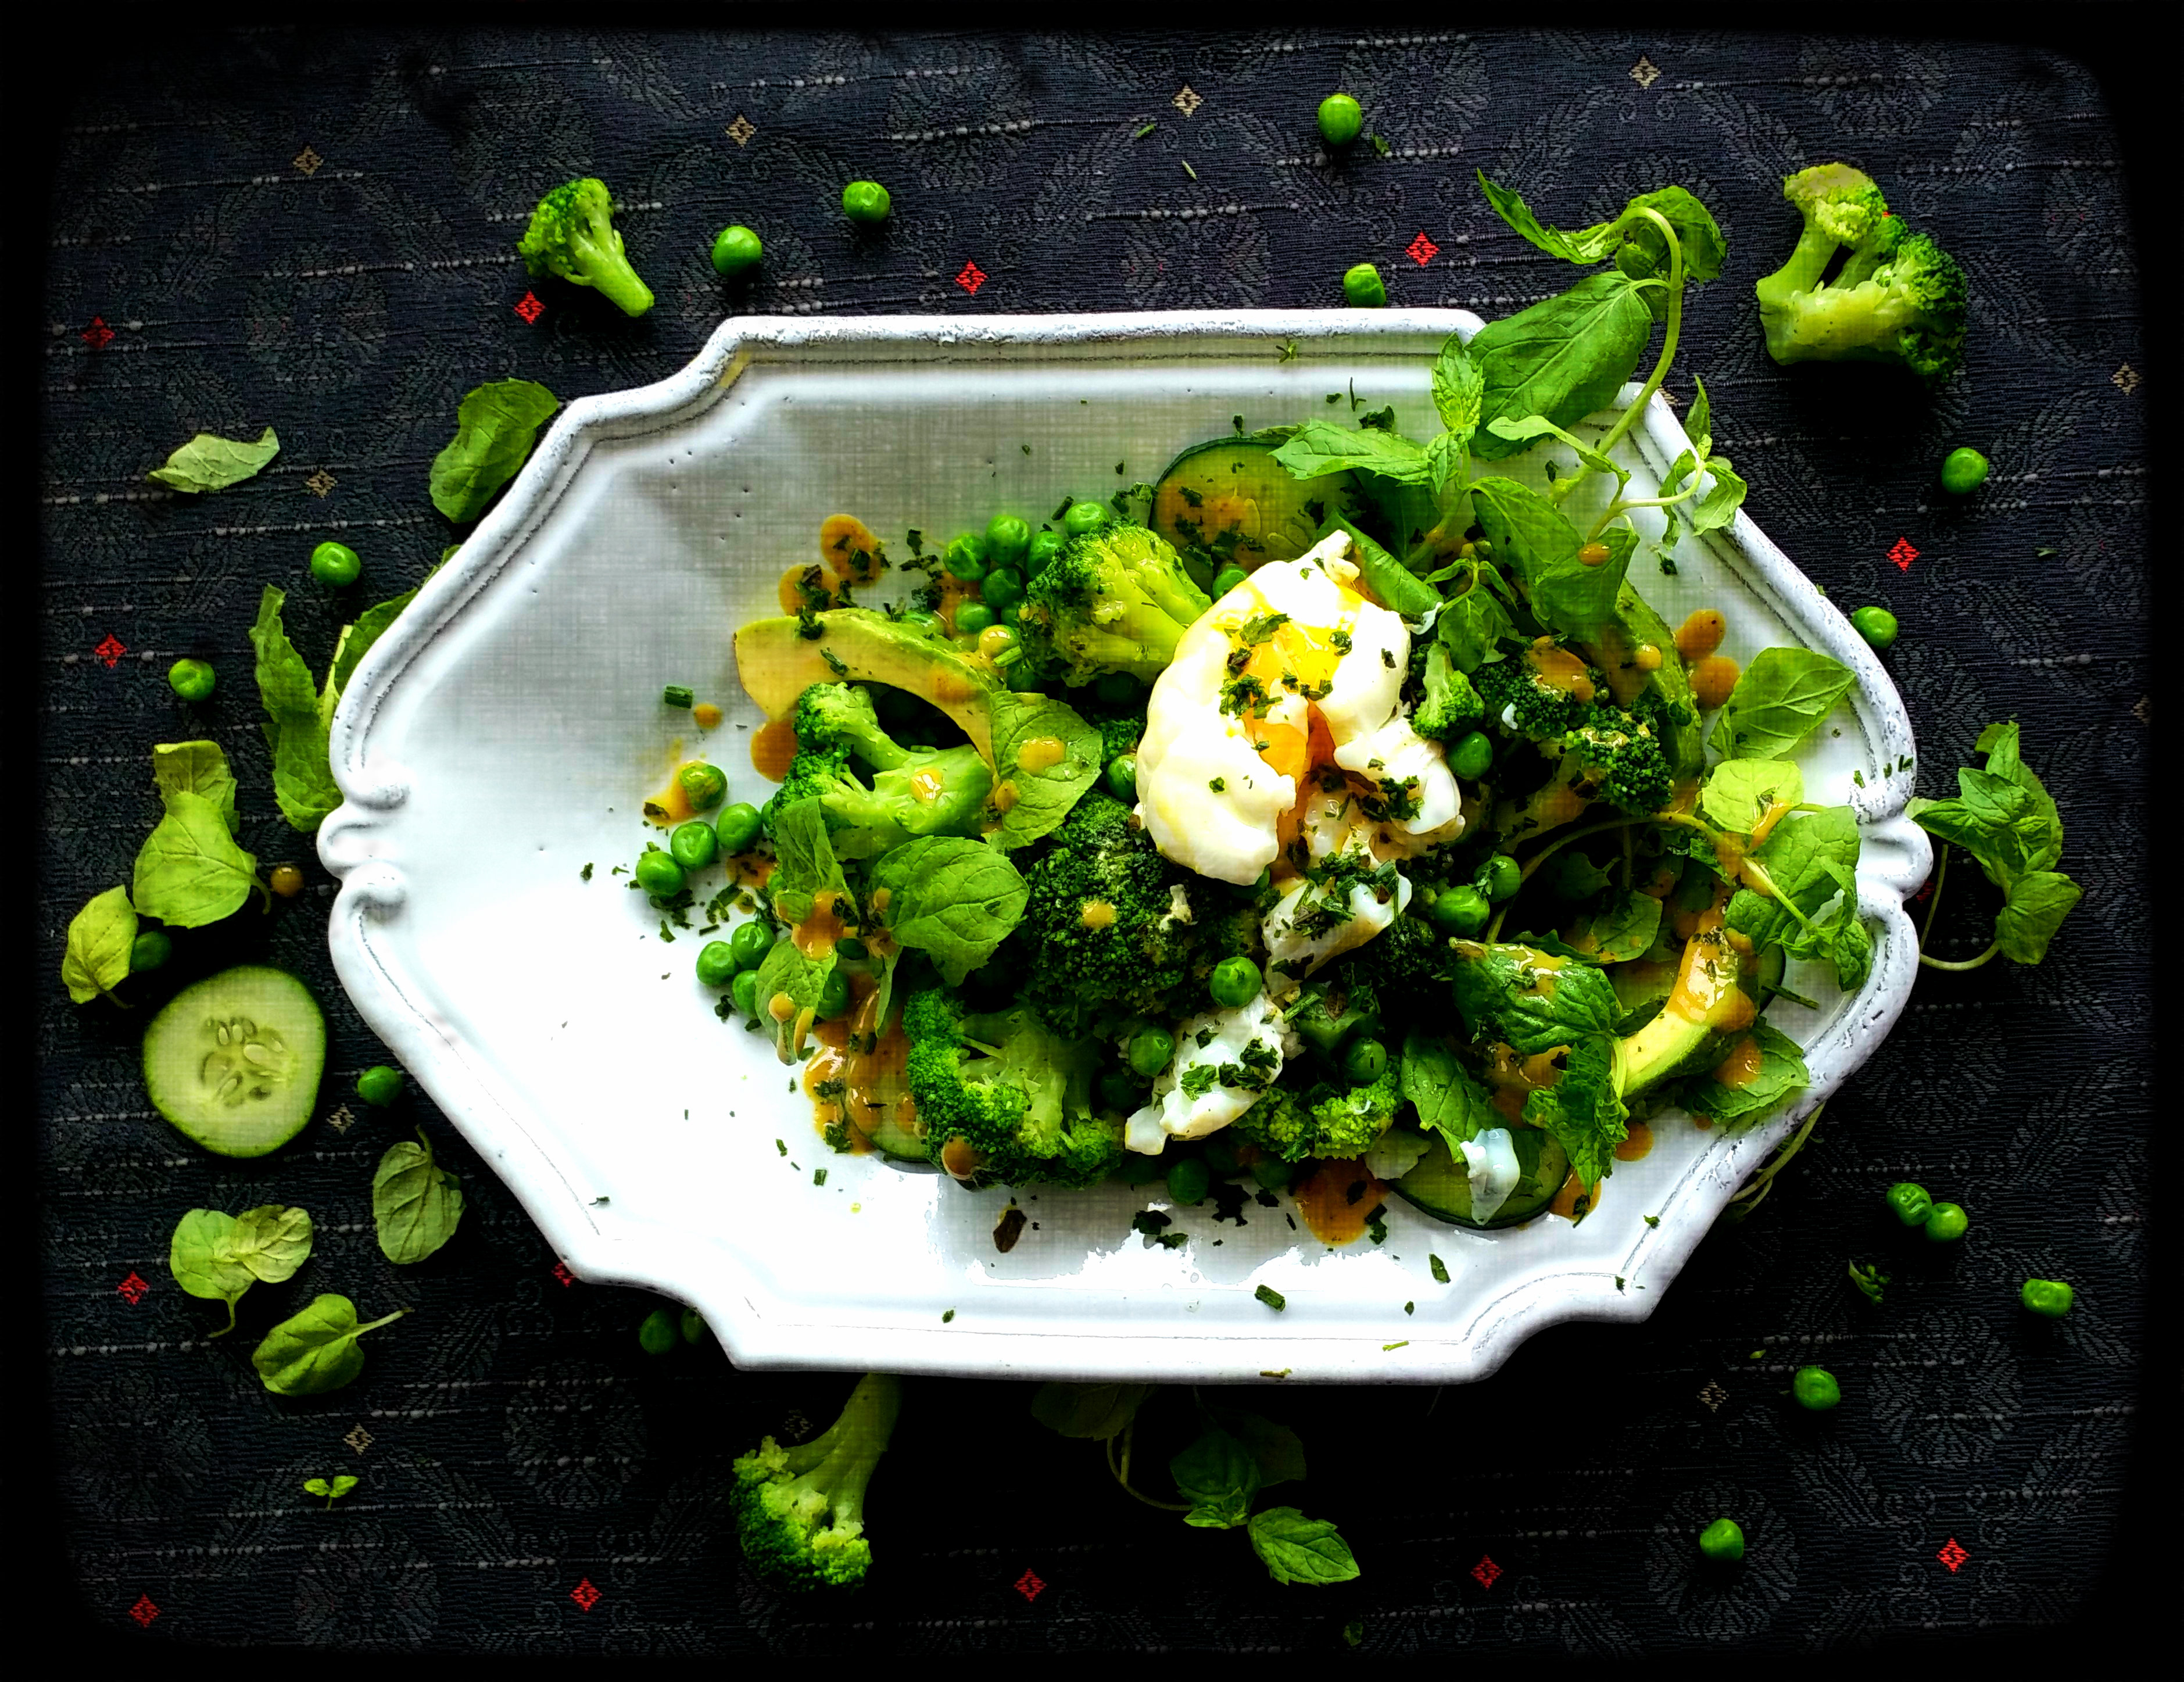 Drenched in Green with Poached Egg